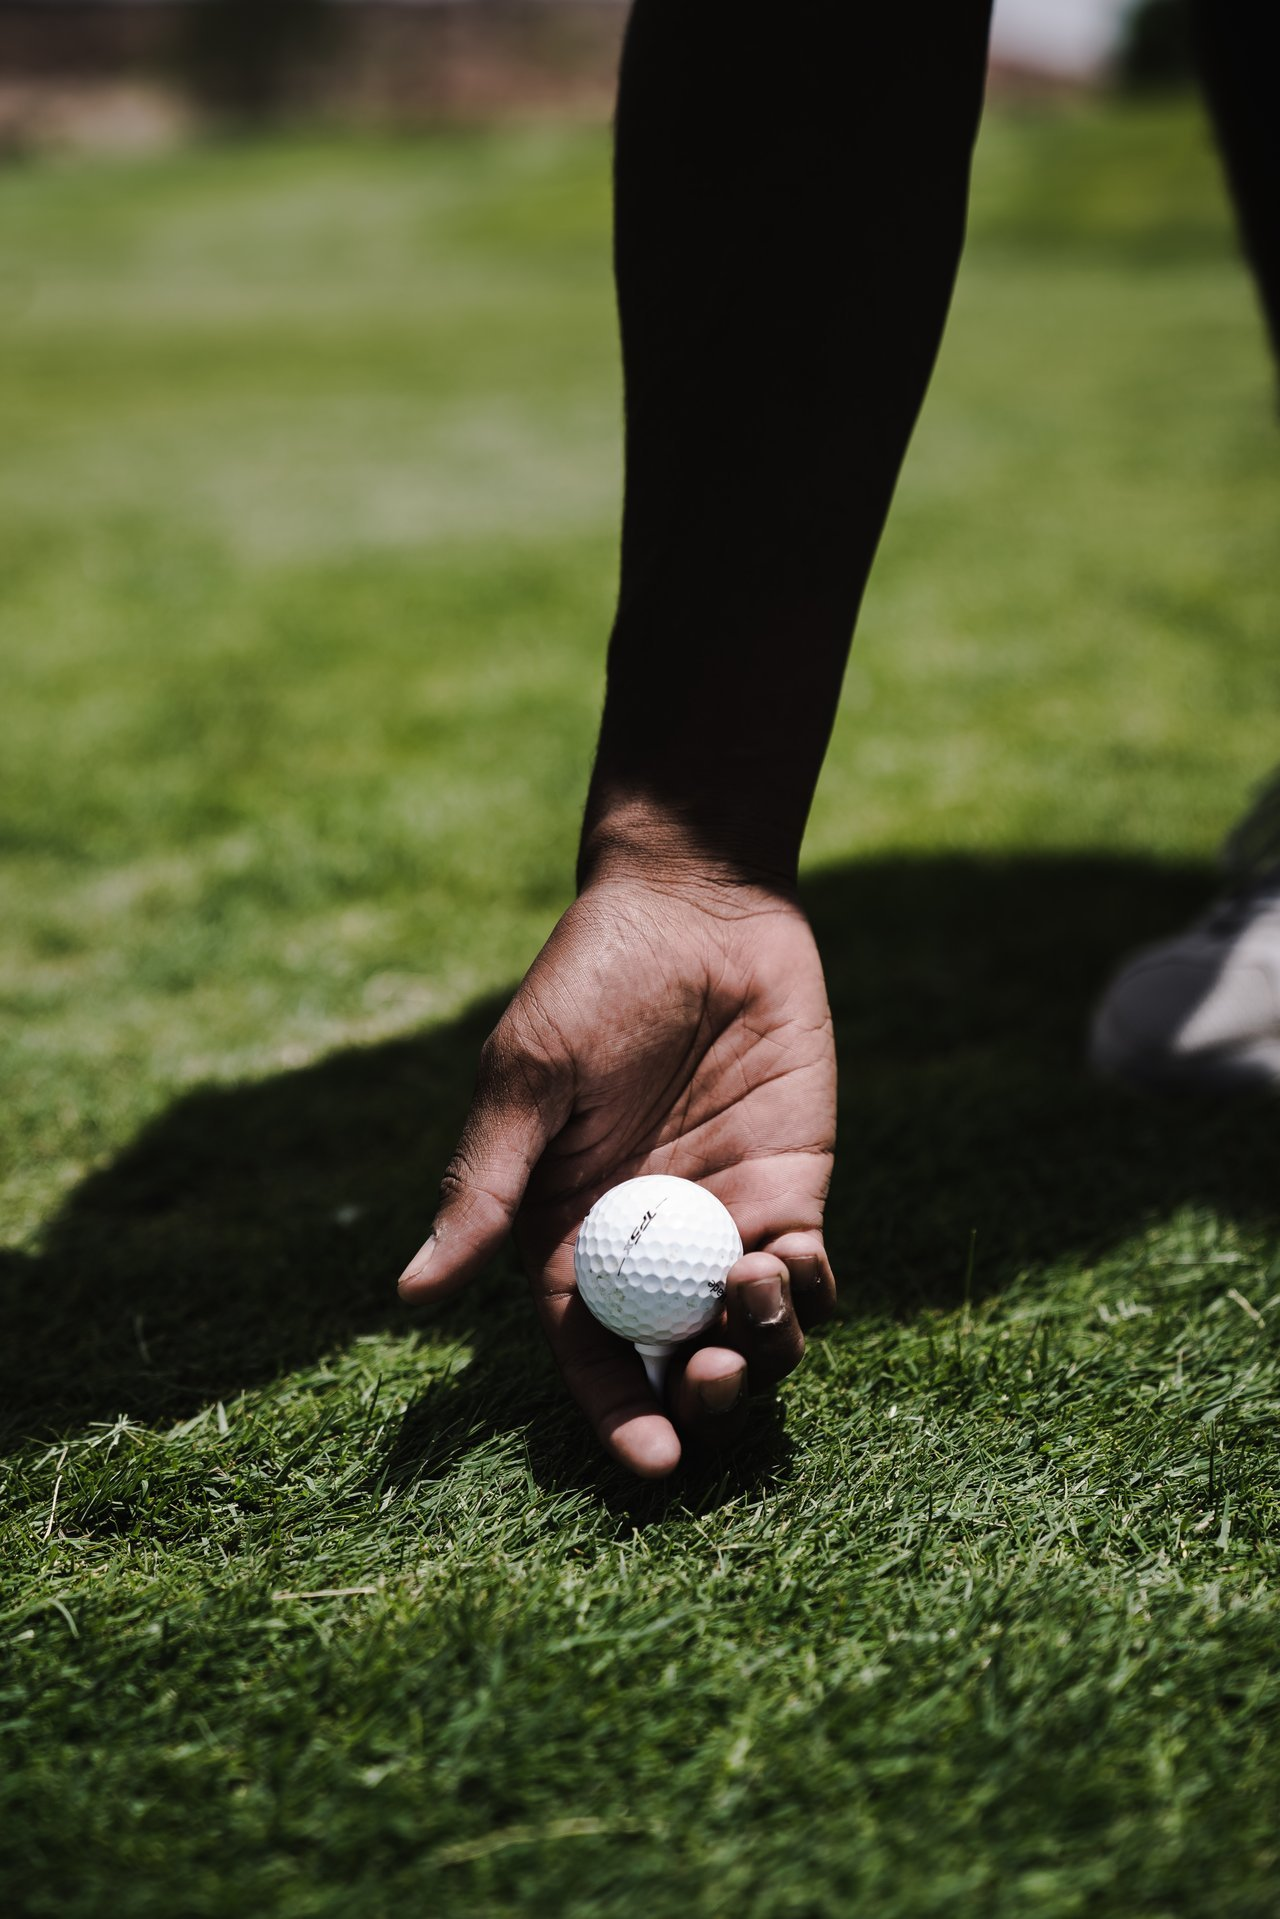 Holding that golf ball | Source: Pexels